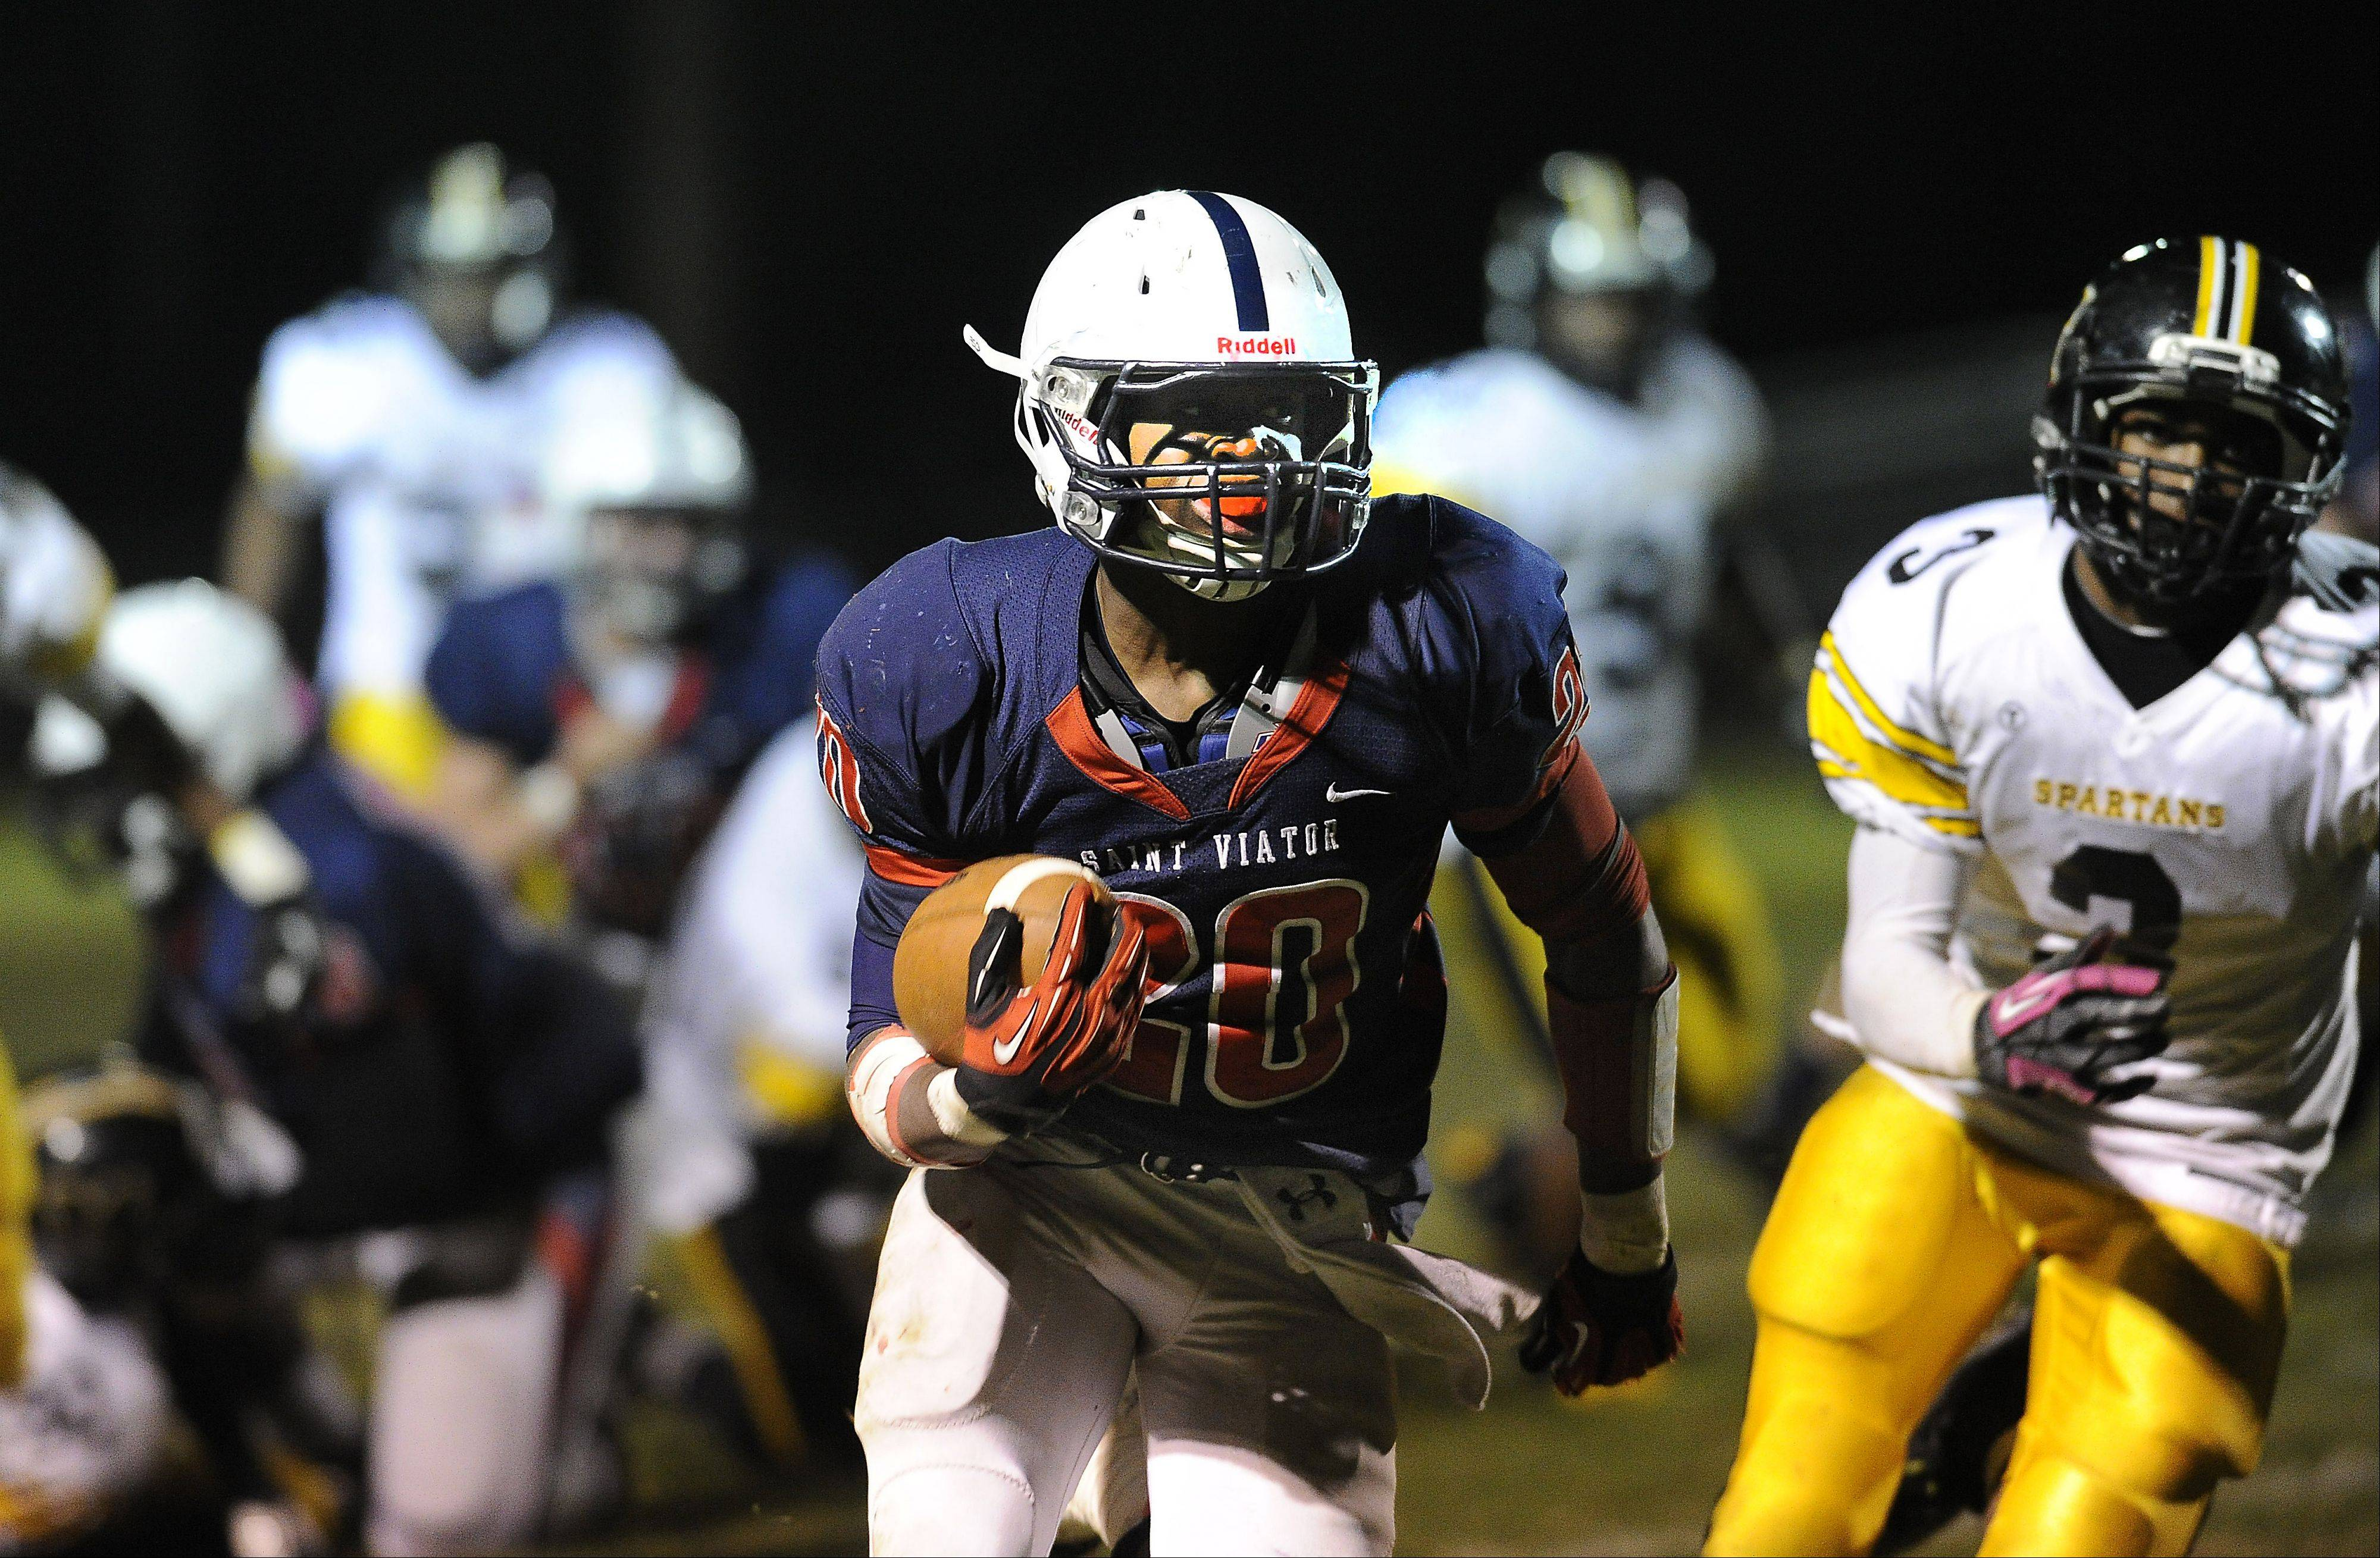 Mark Welsh/mwelsh@dailyherald.com St. Viator's Mayo Arogundade outruns the Marian Catholic defensive players in the second quarter on this touchdown run at Forest View Educational Center in Arlington Heights on Friday.